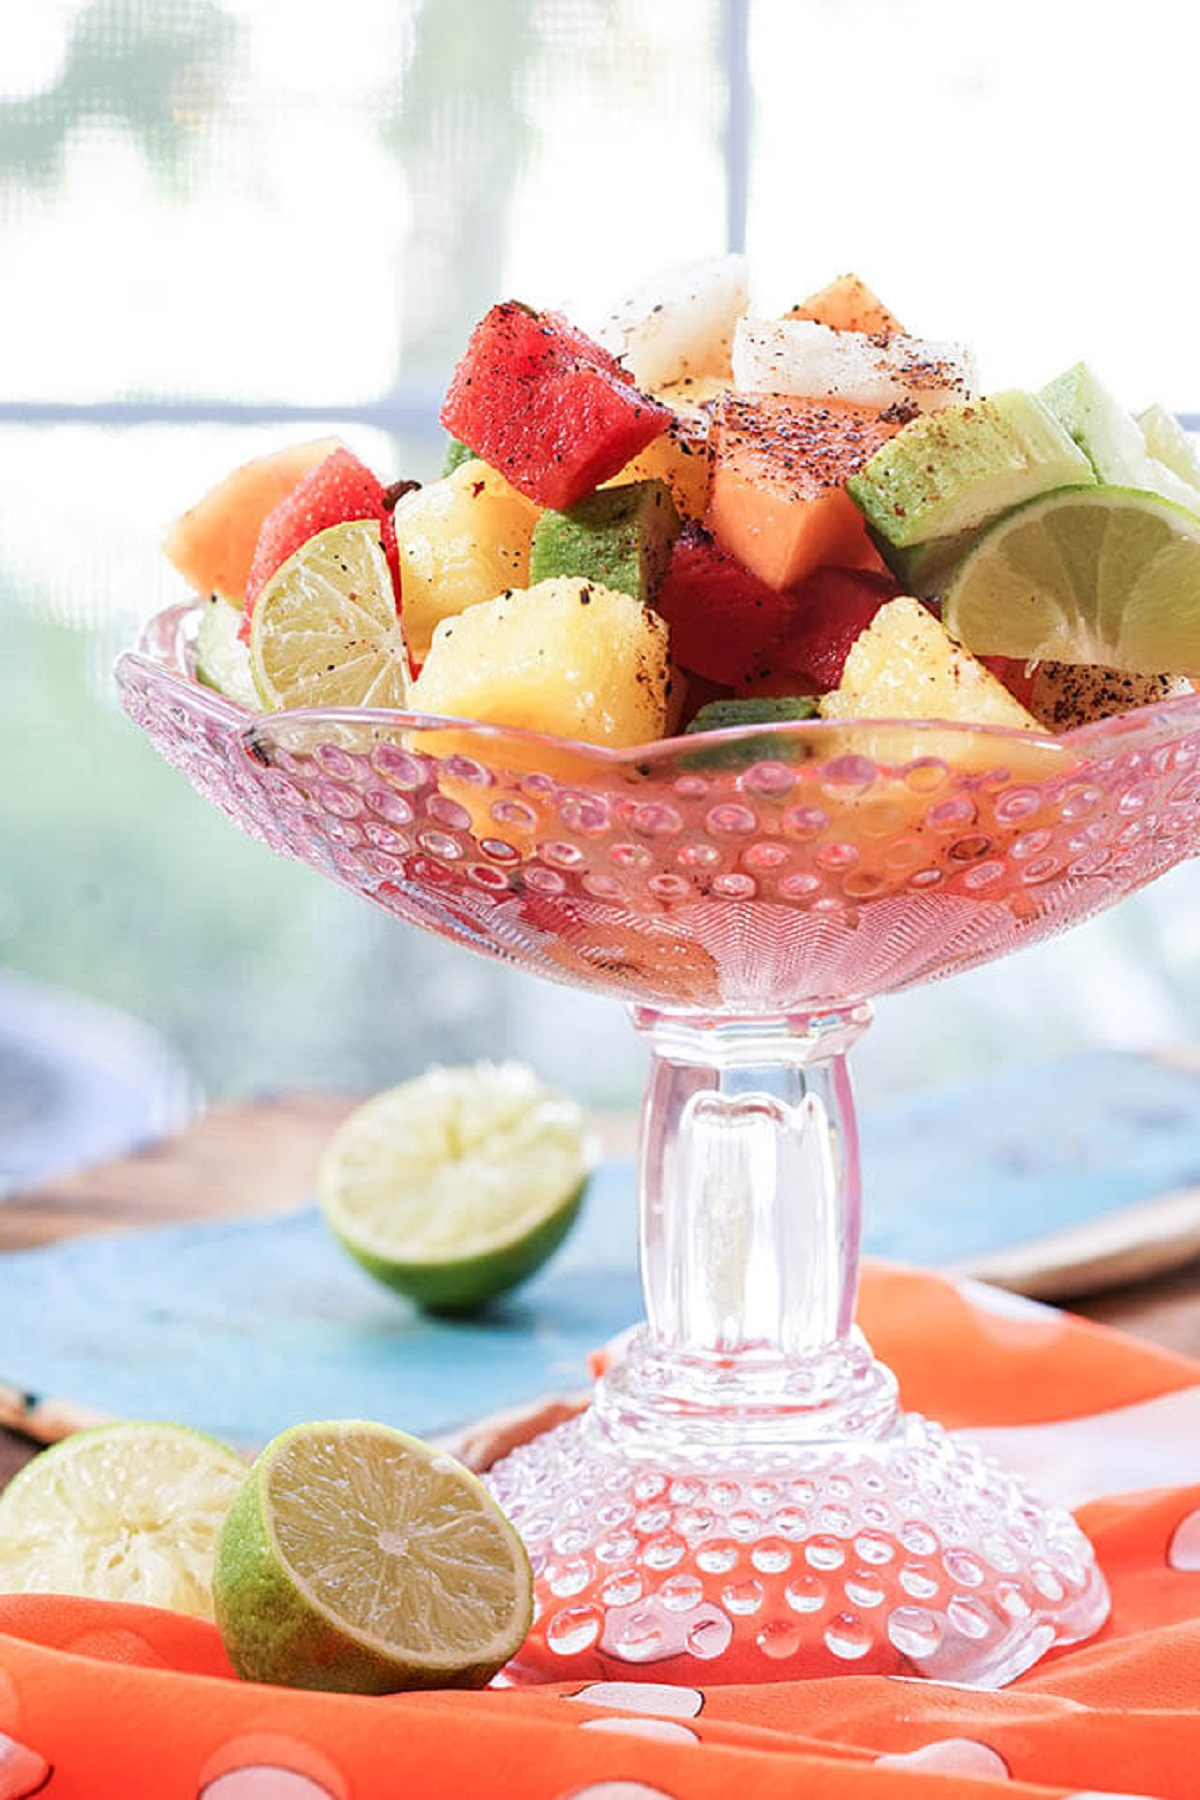 Mexican fruit salad in a tall pedestal dish with slices of lime on the table